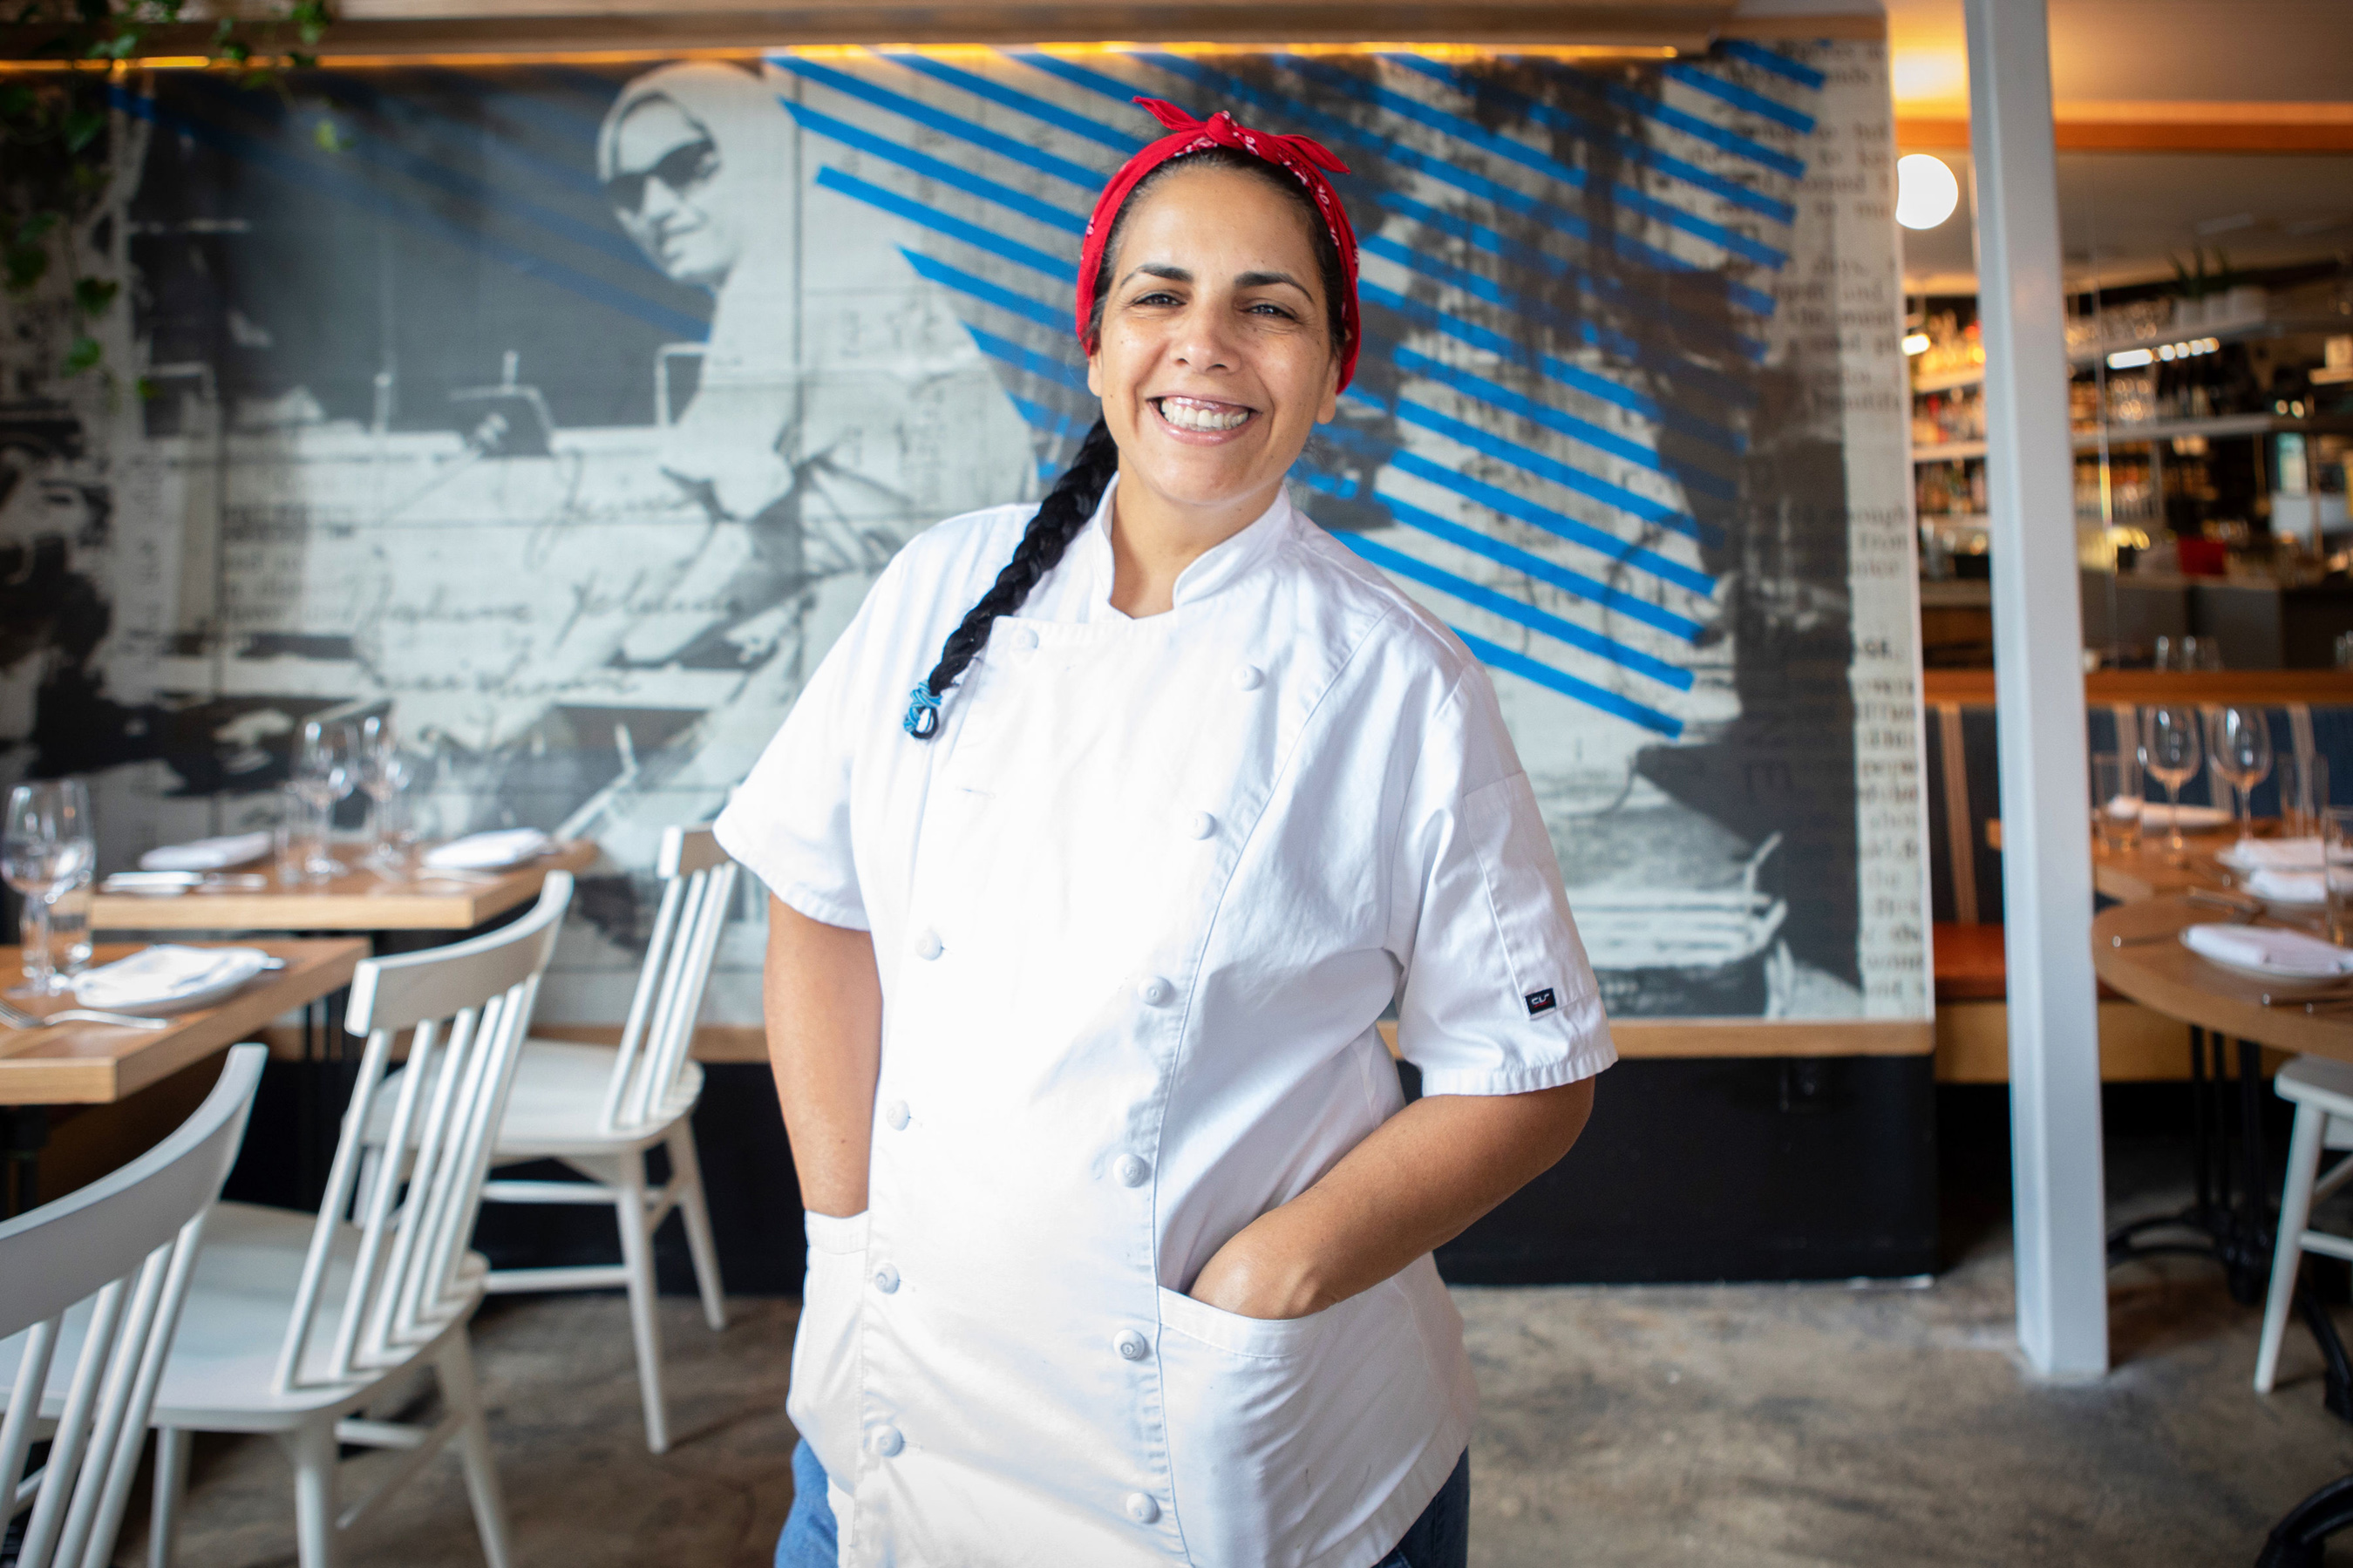 Chef Einat Admony - Chef at Kish-Kash, Taim, and Balaboosta and author of Shuk: From Market to Table, the Heart of Israeli Home Cooking.